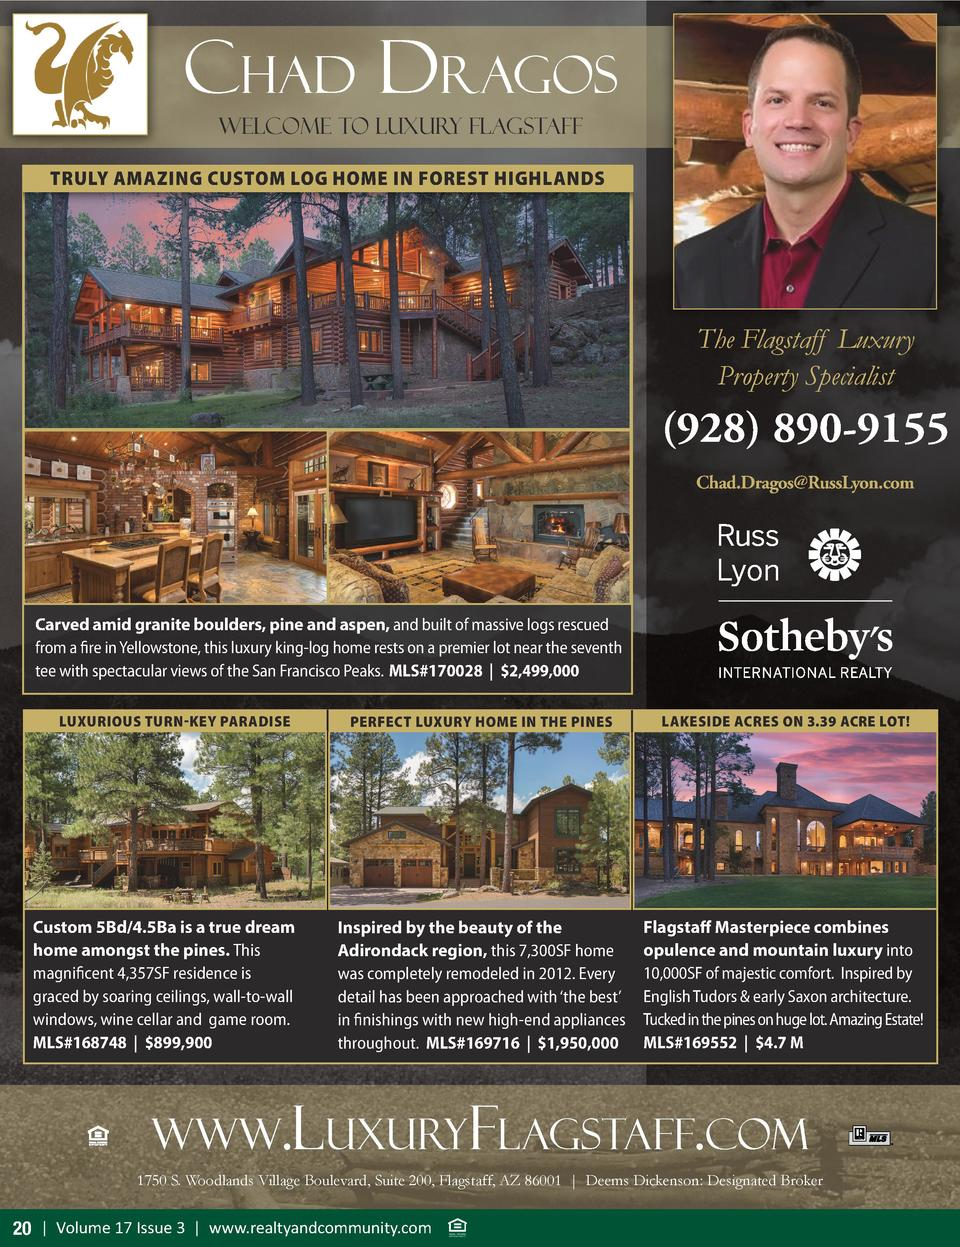 chad dragos Welcome To luxury flagstaff TRULY AMAZING CUSTOM LOG HOME IN FOREST HIGHLANDS  The Flagstaff Luxury Property S...